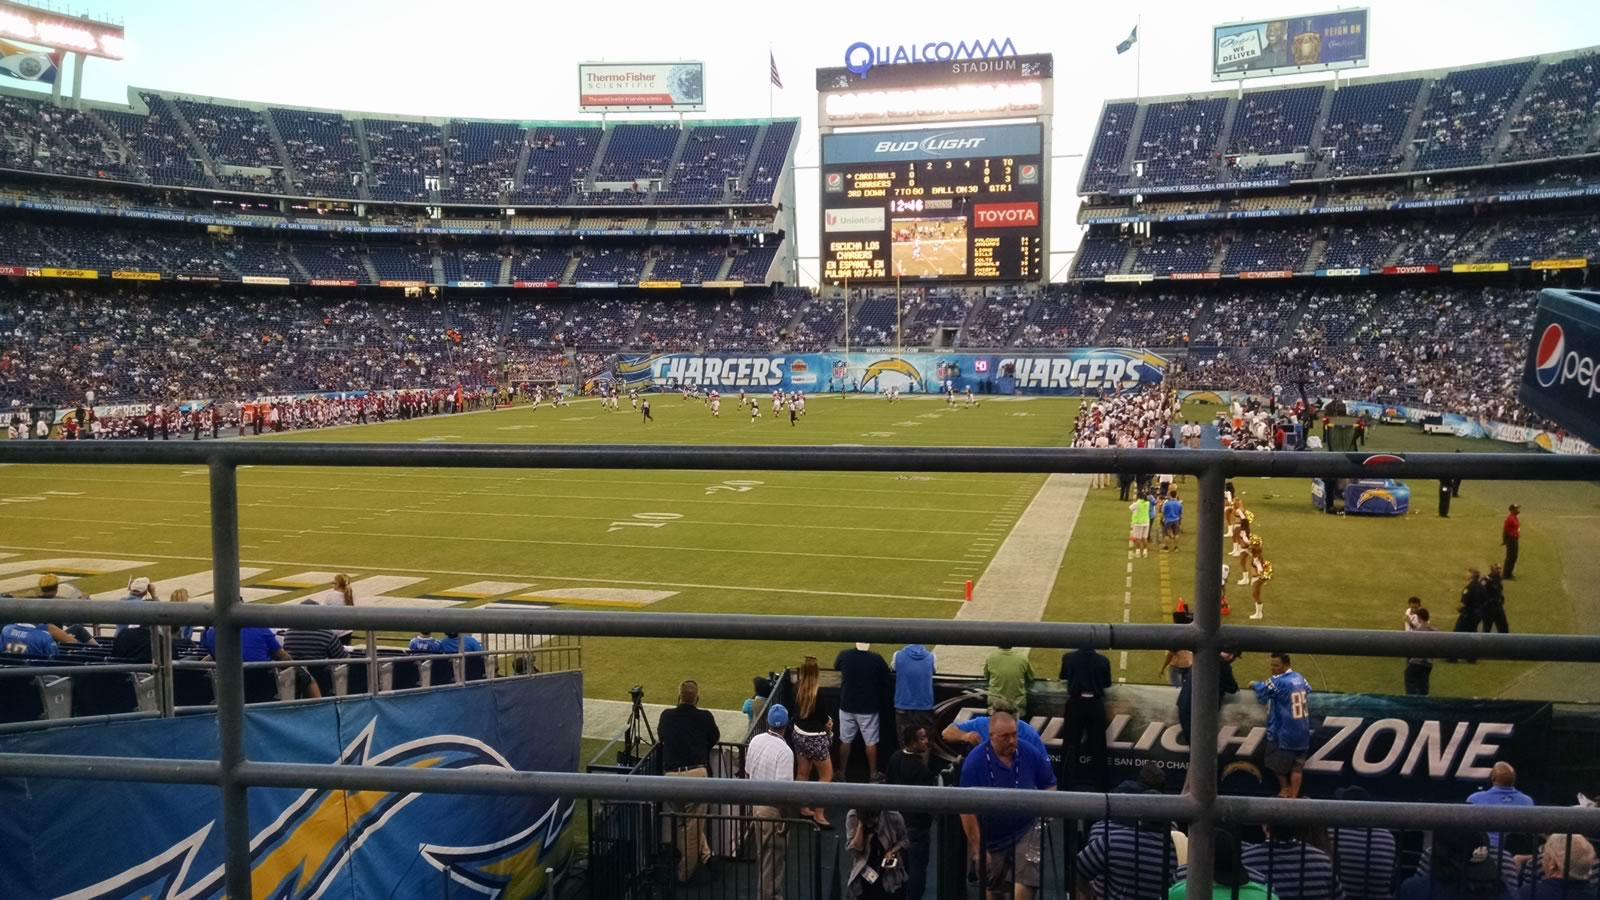 Seat View for SDCCU Stadium Plaza 24, Row 1, Seat 8